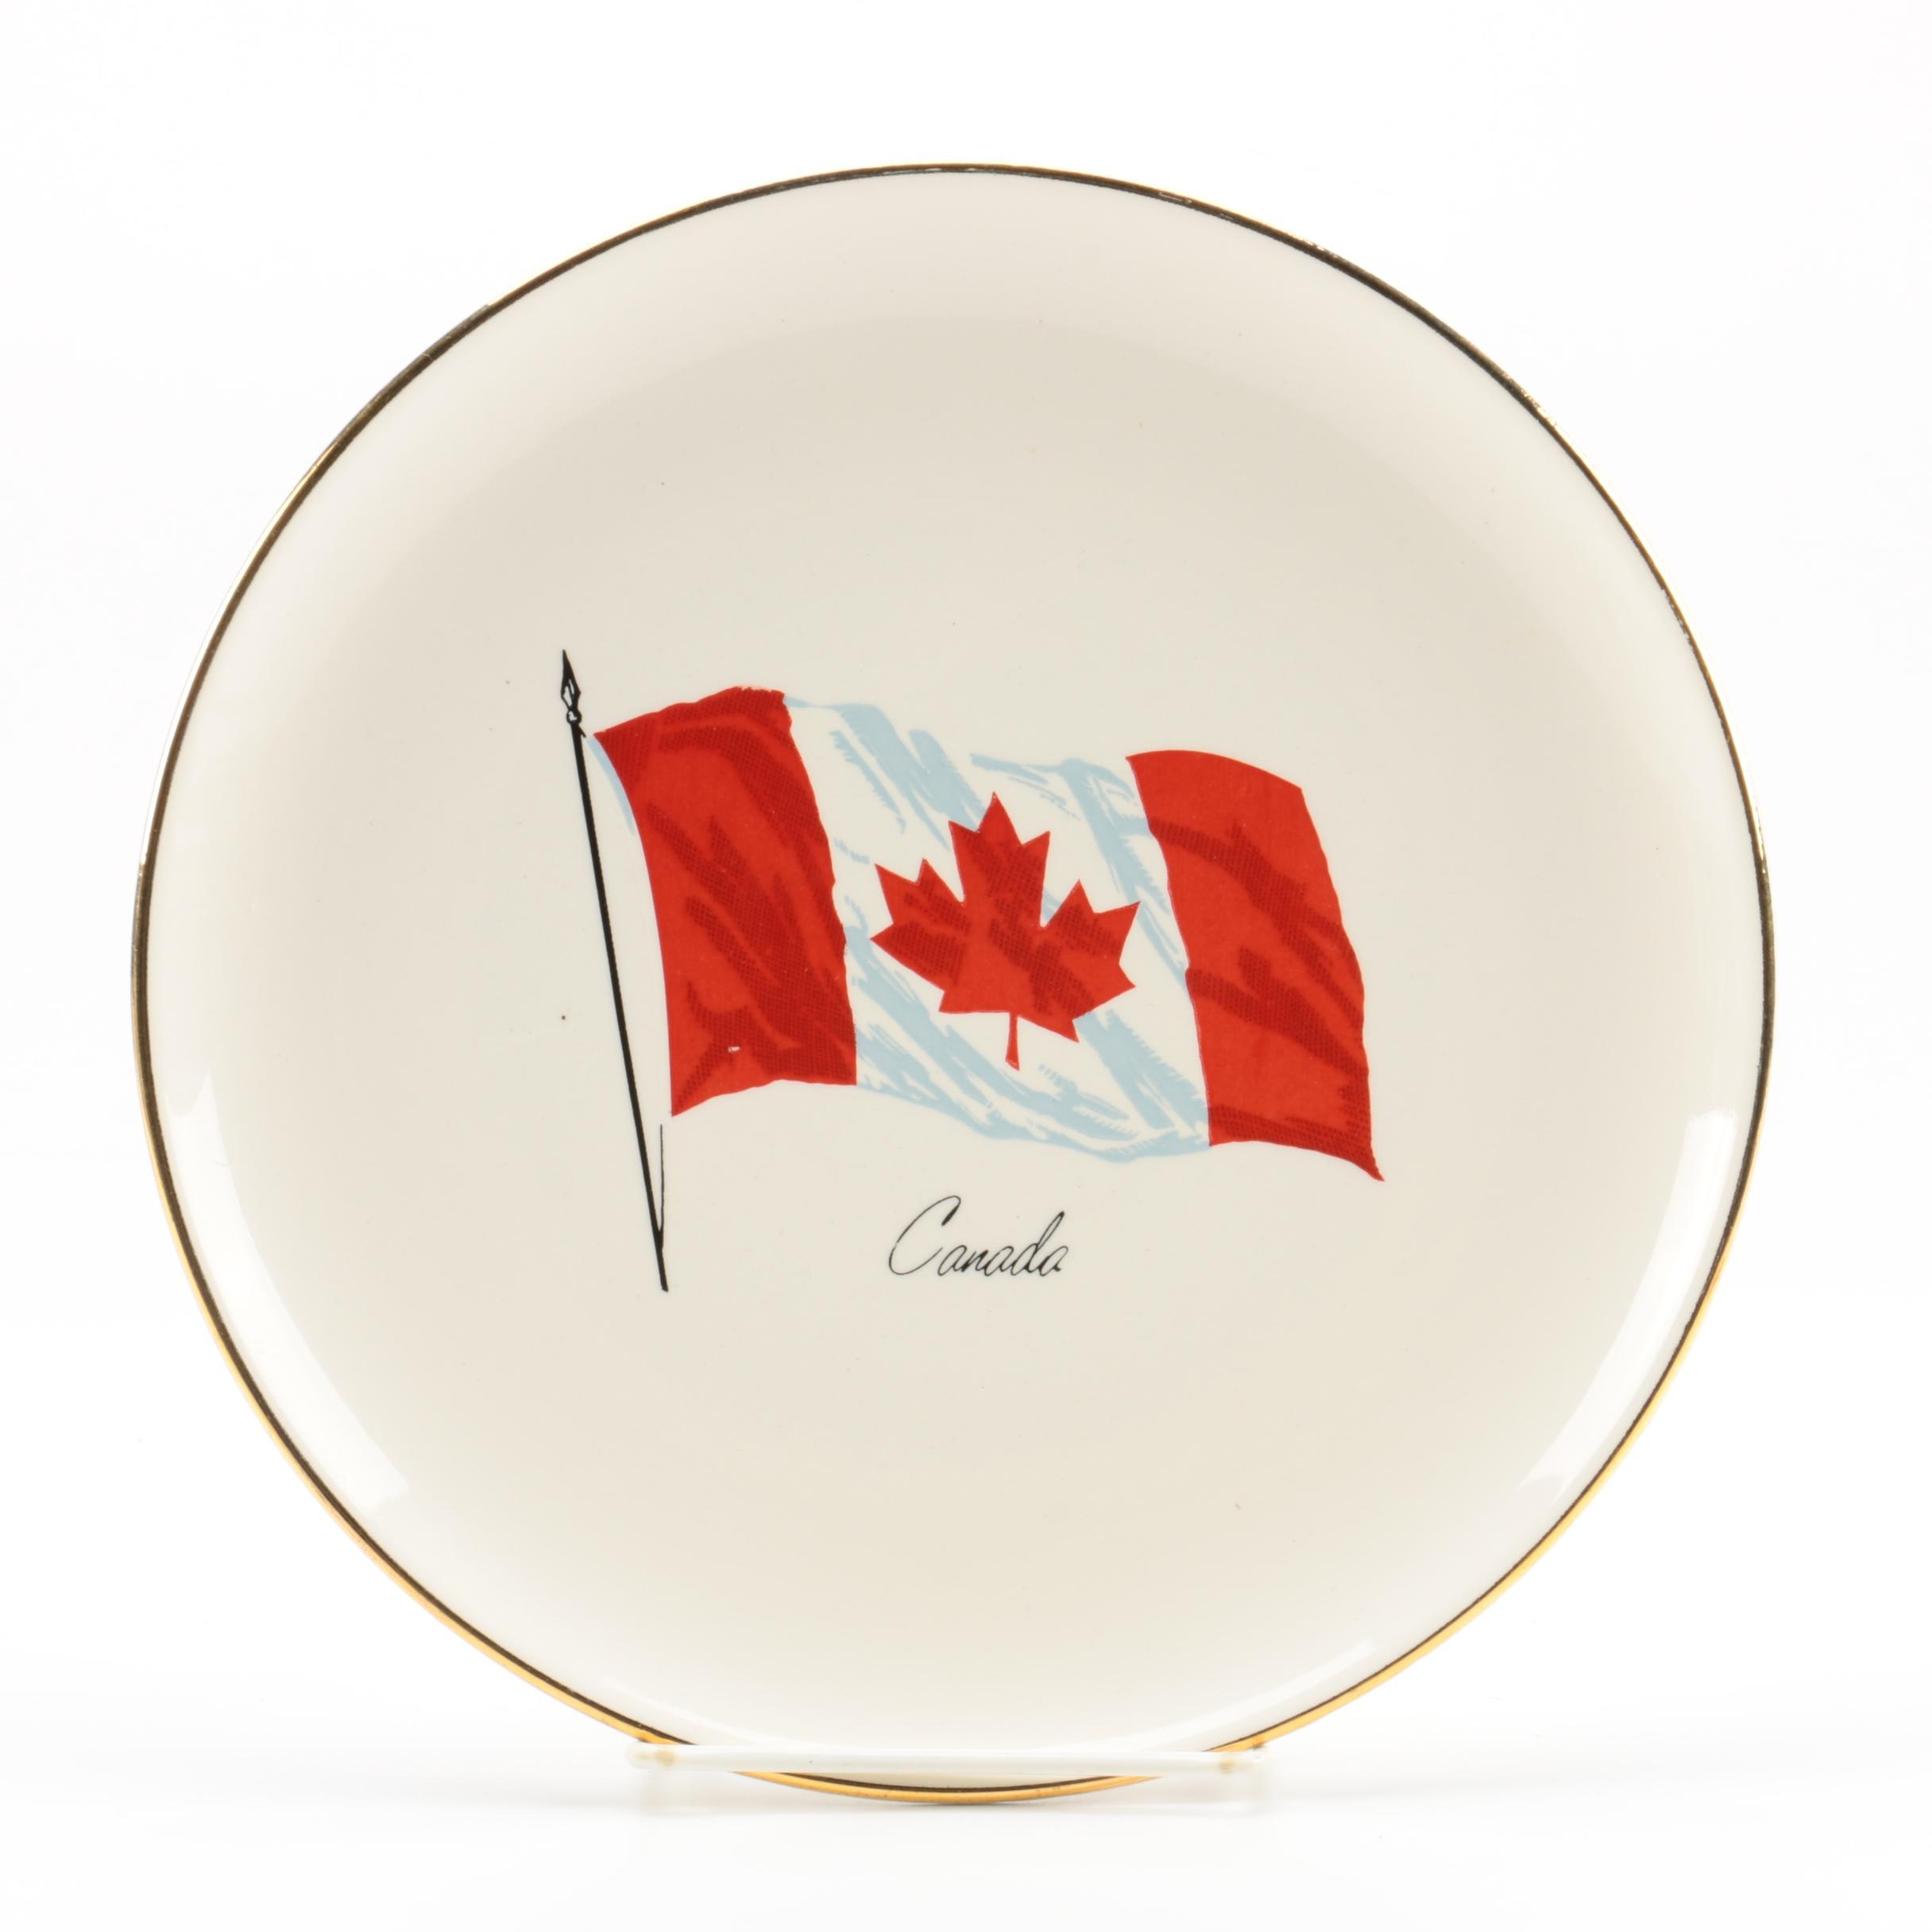 Canadian Flag Motif Decorative Plate With 22K Gold Rim